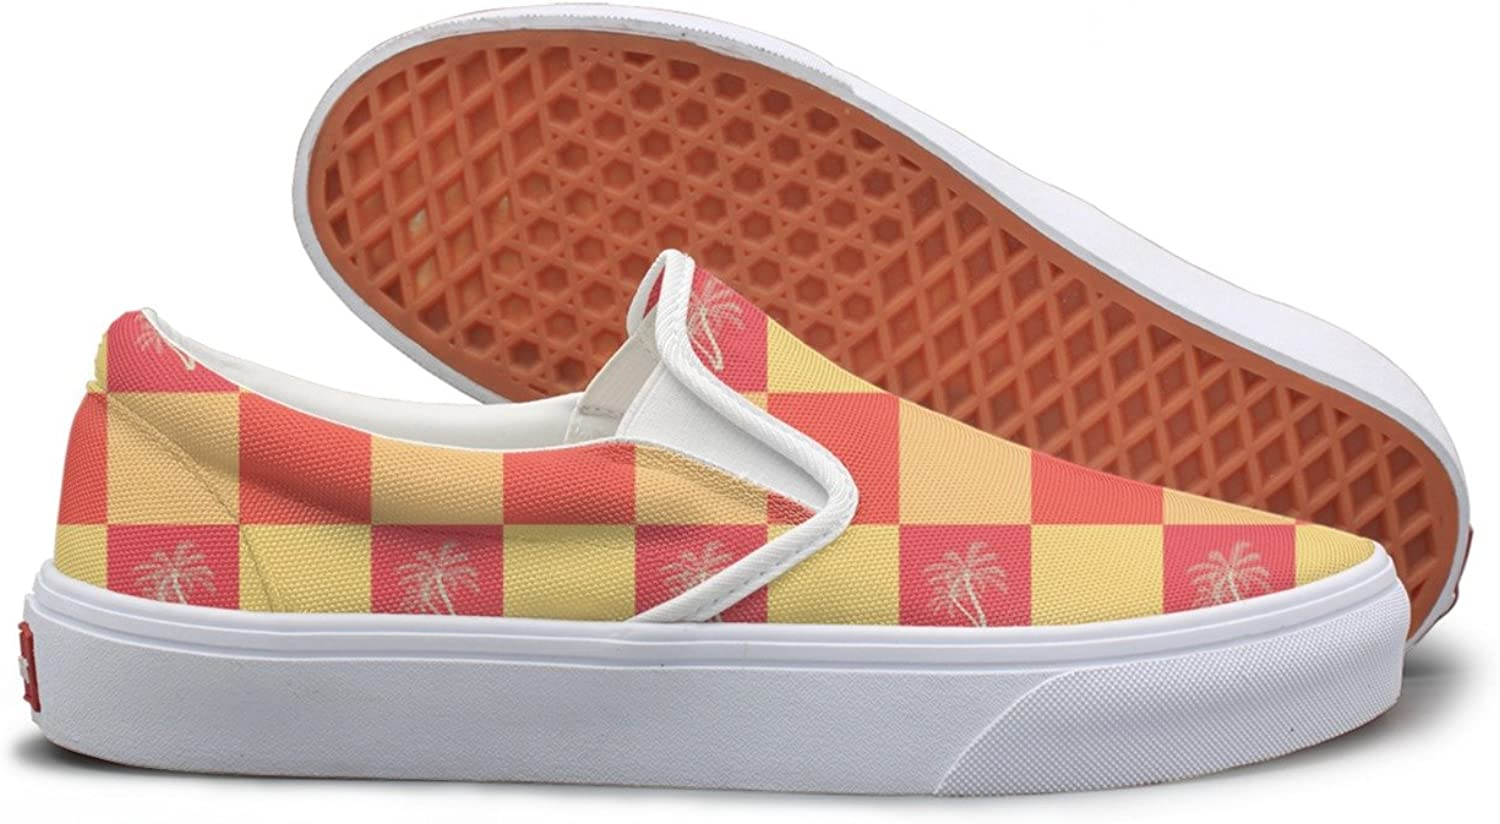 Coconut Palm Trees Top Sneakers For Women